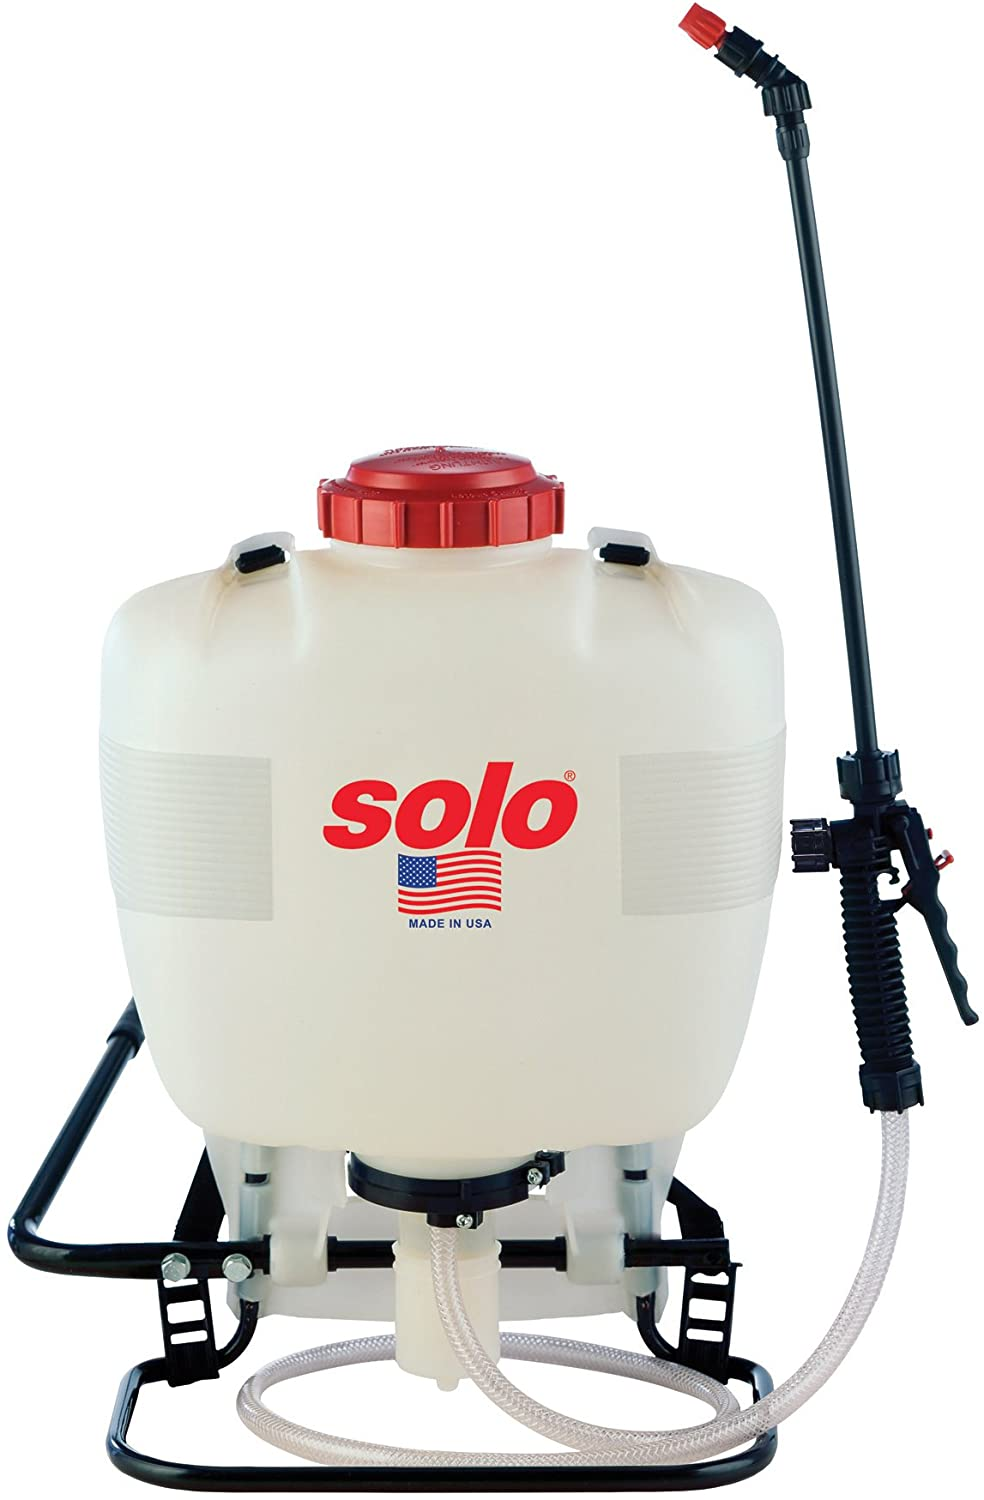 Solo 4-Gallon